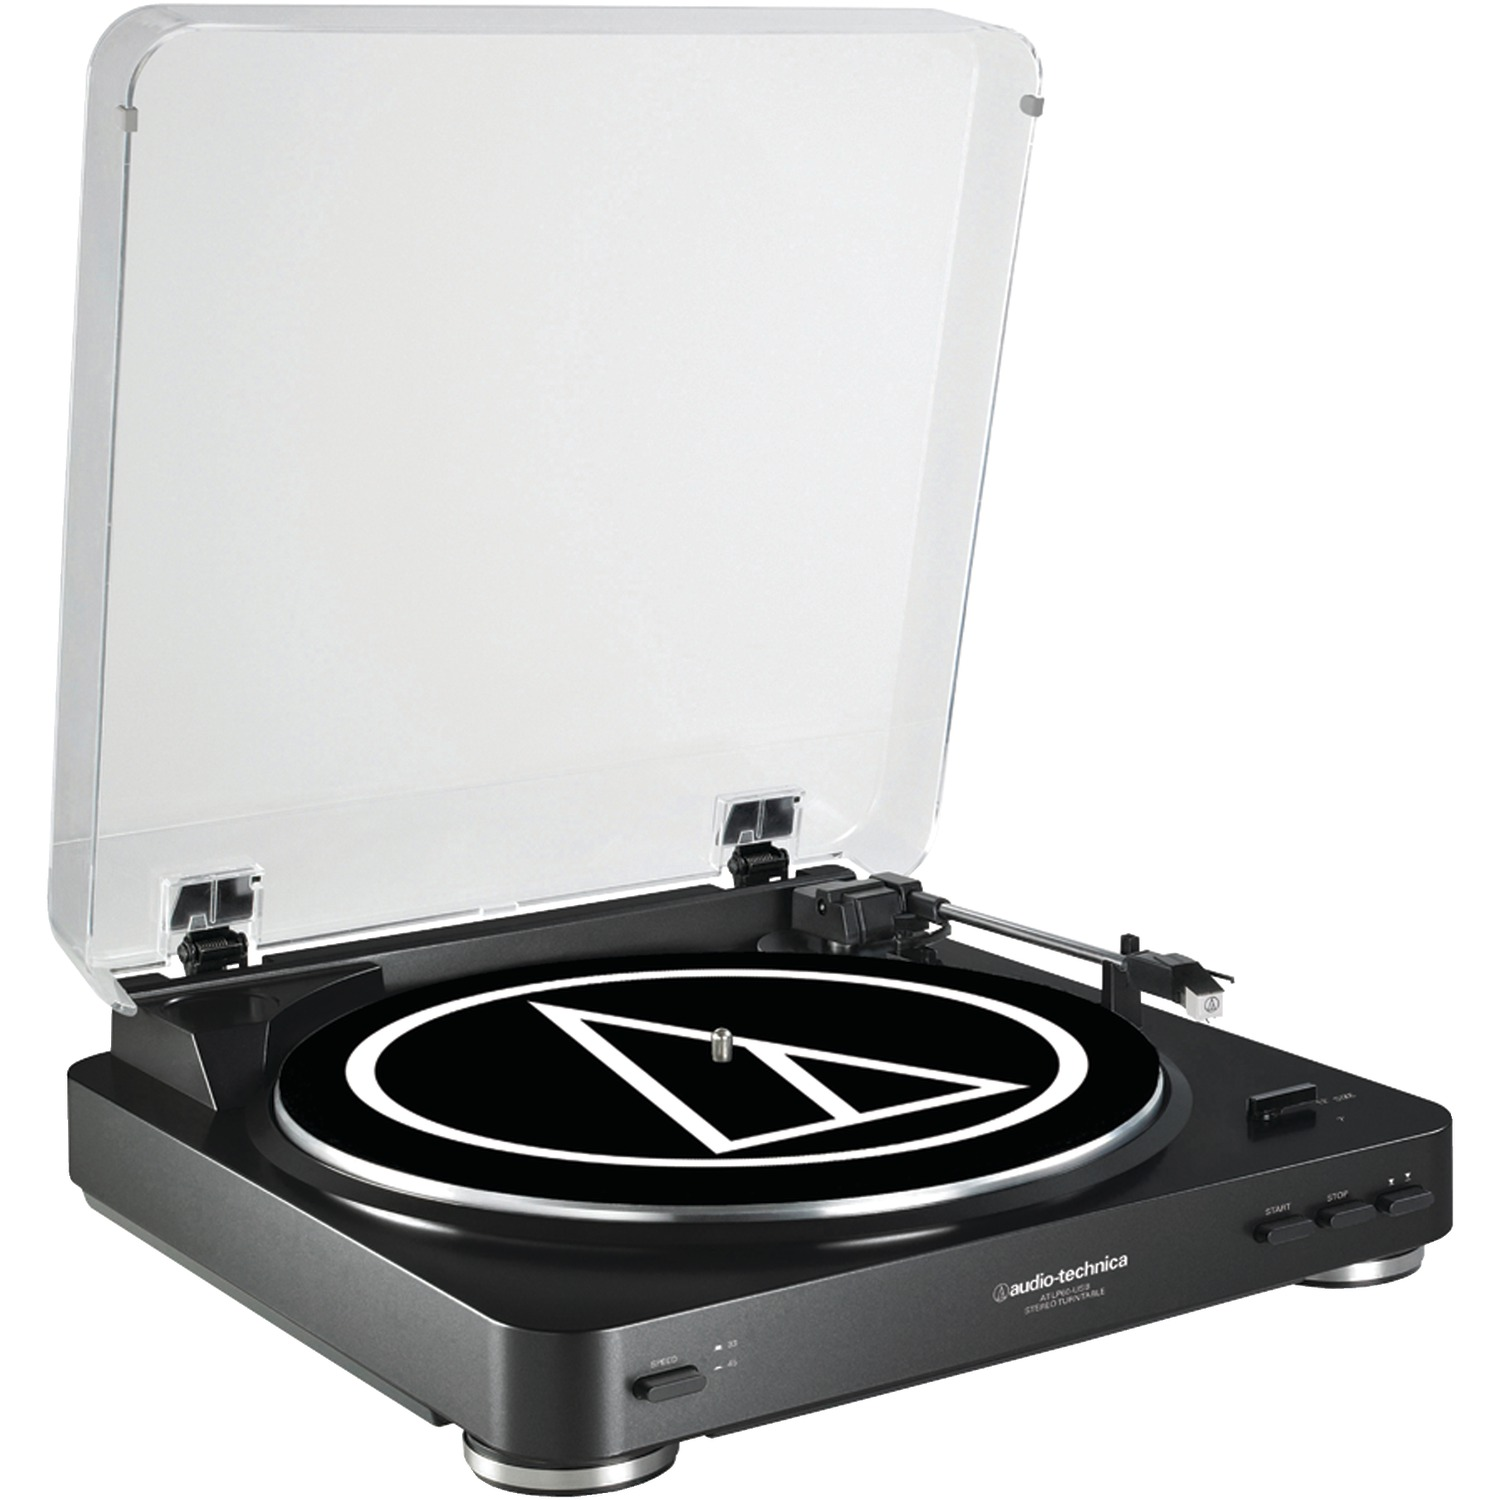 Audio-Technica AT-LP60BK-USB Fully Automatic Belt-Drive USB & Analog Stereo Turntable (Black)